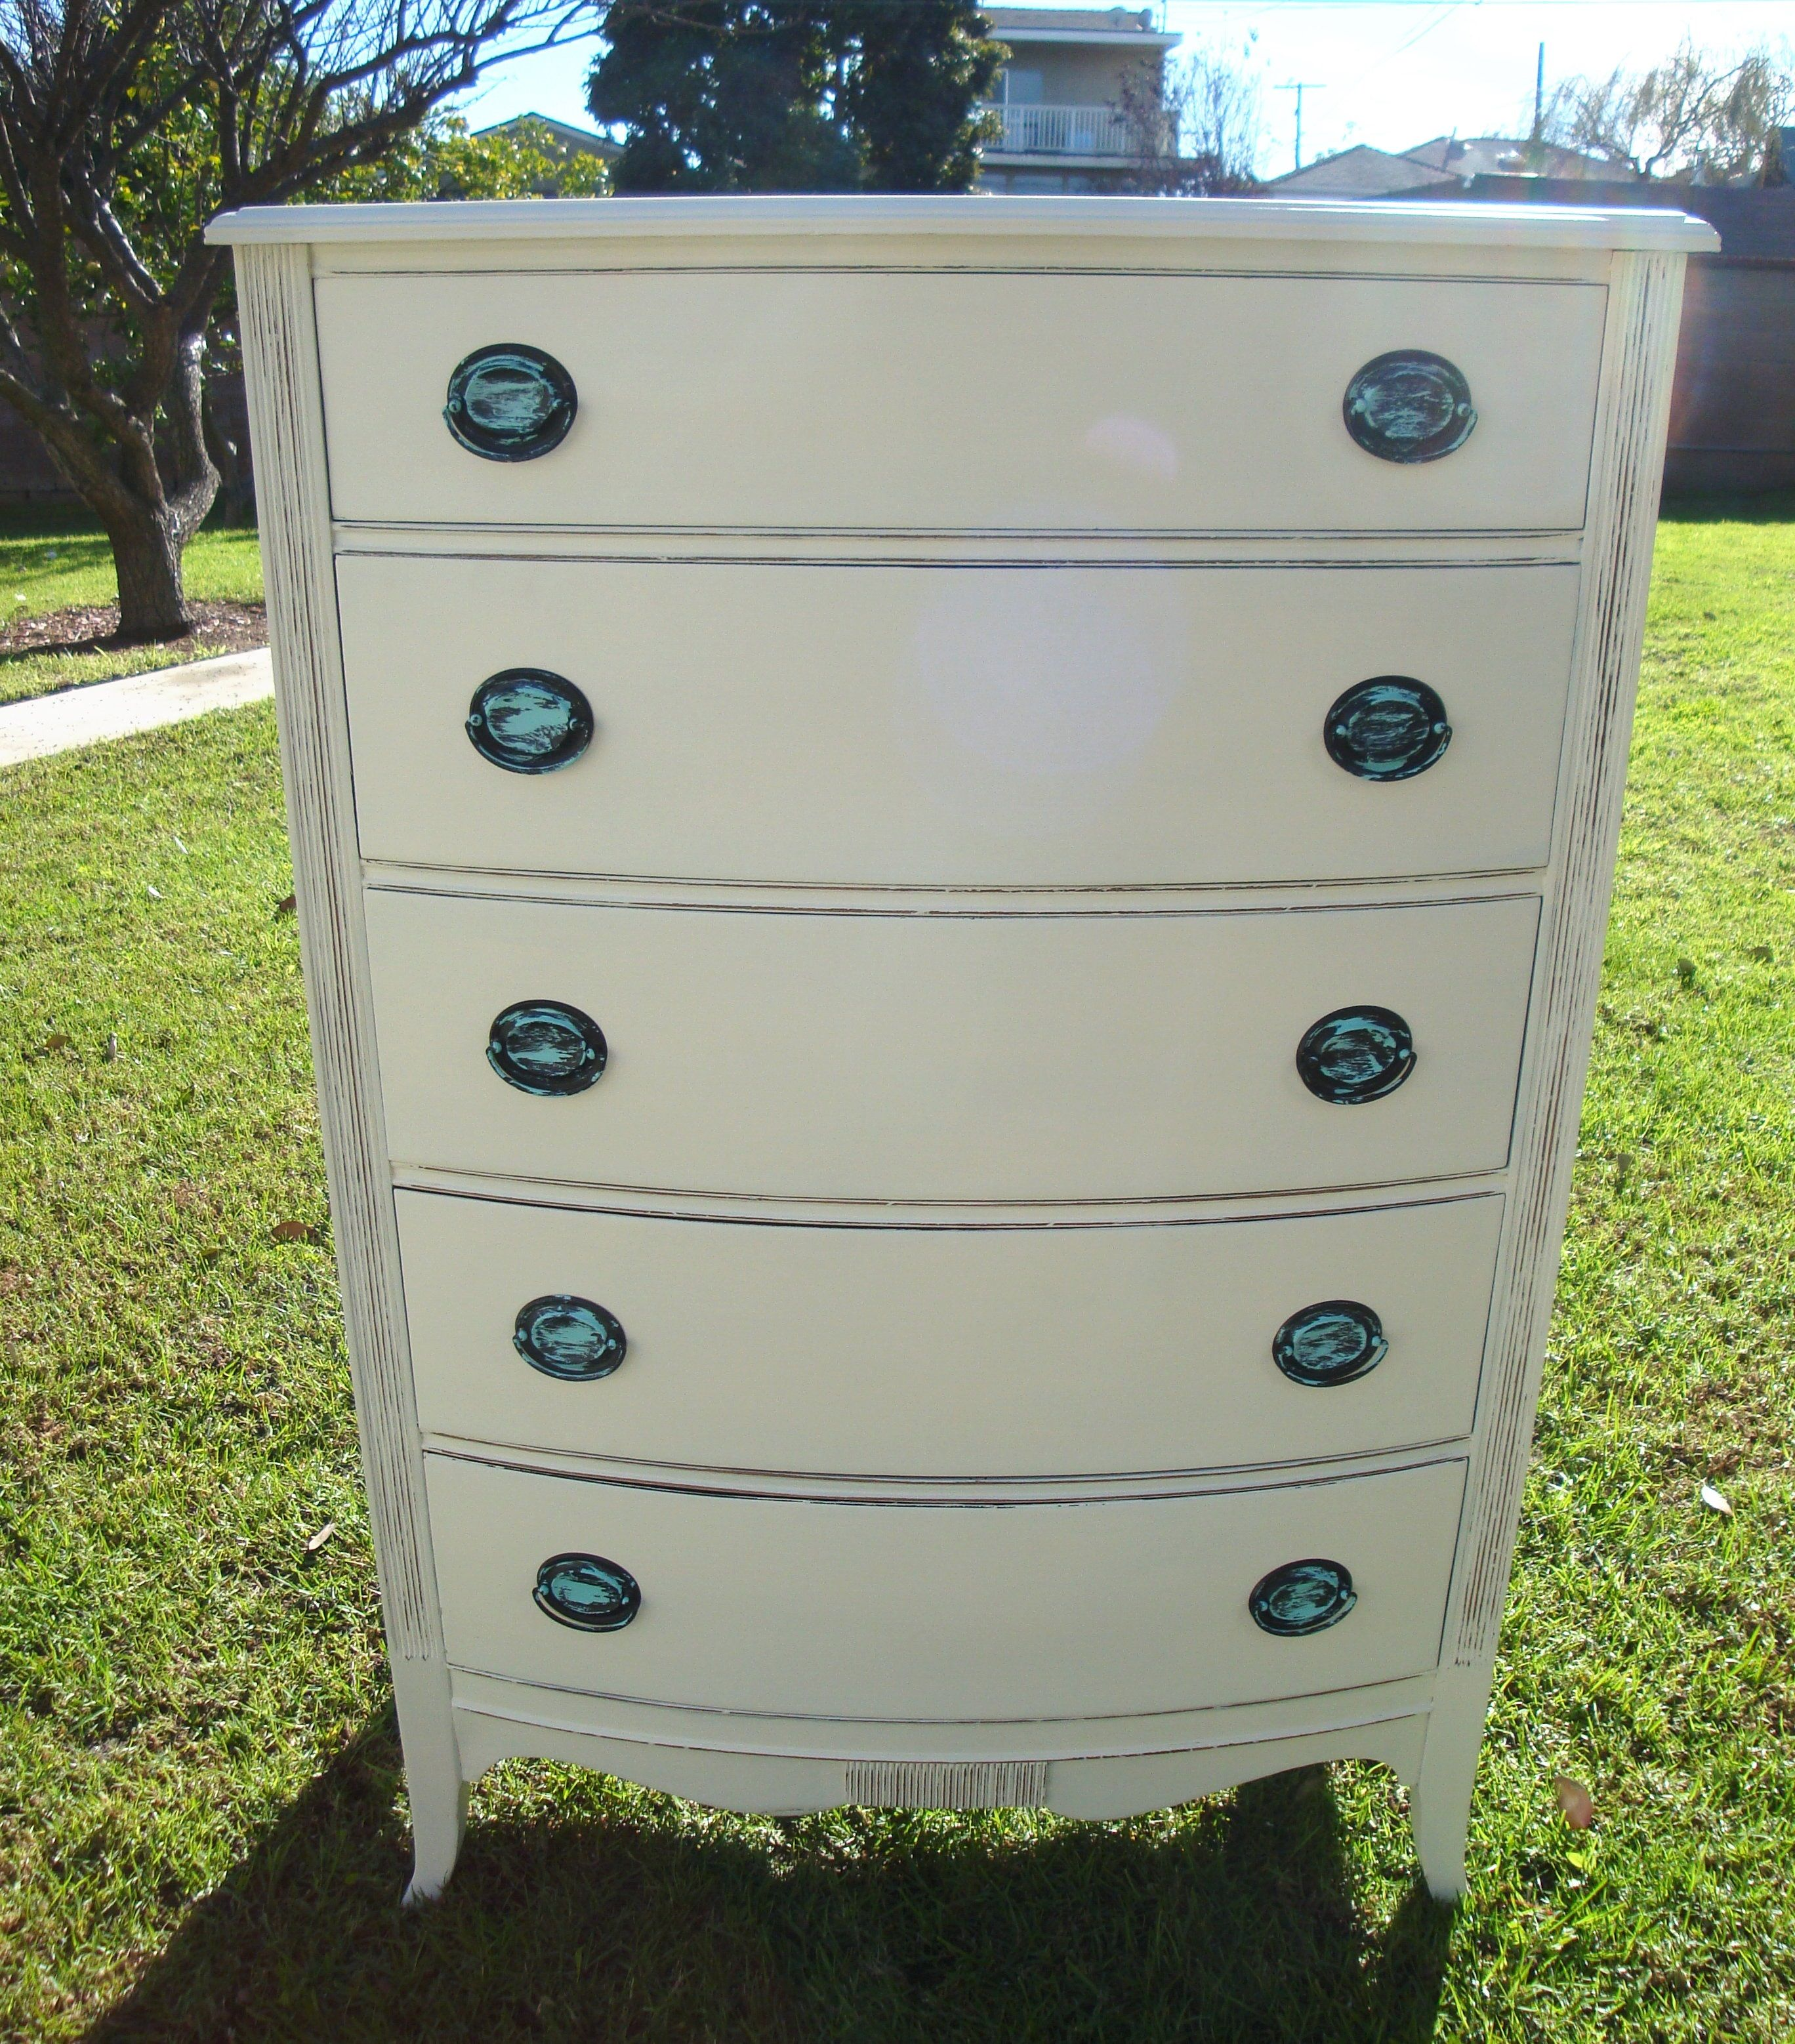 drawers product manor free magnolia antique shipping today drawer home dresser overstock garden chest white